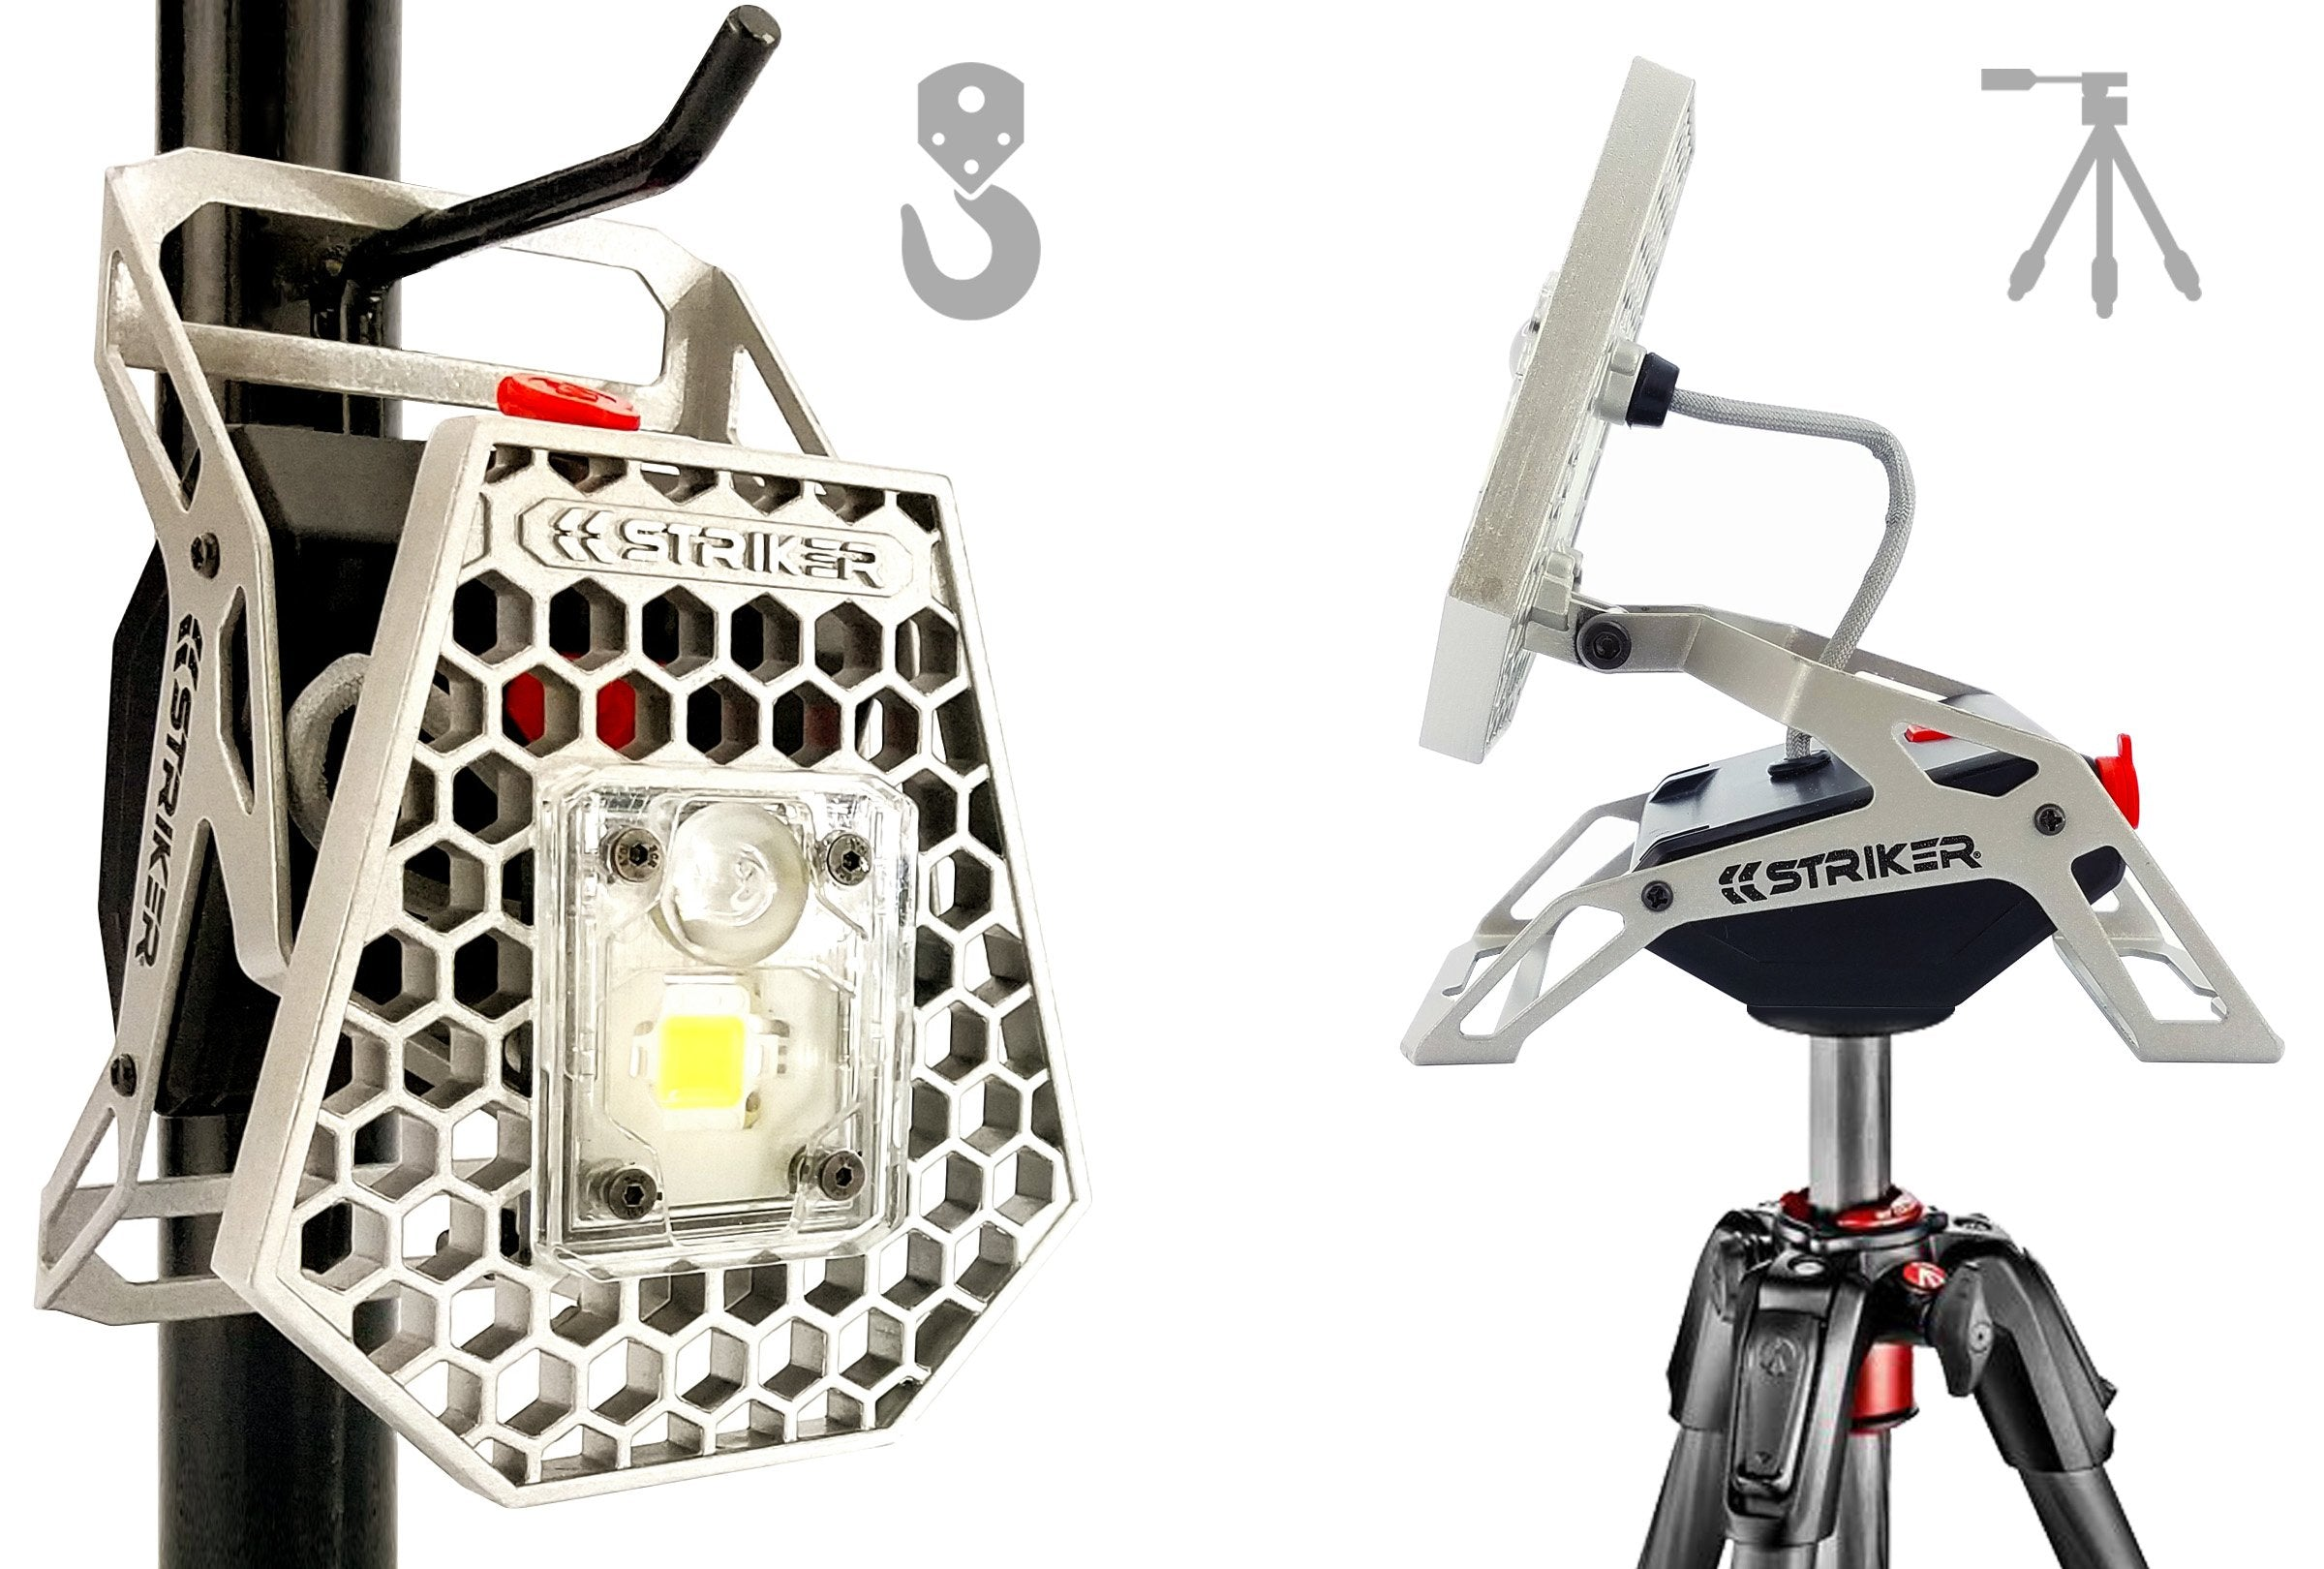 The Mobile Task Light features a Universal Tripod Mount and Hanging Holes